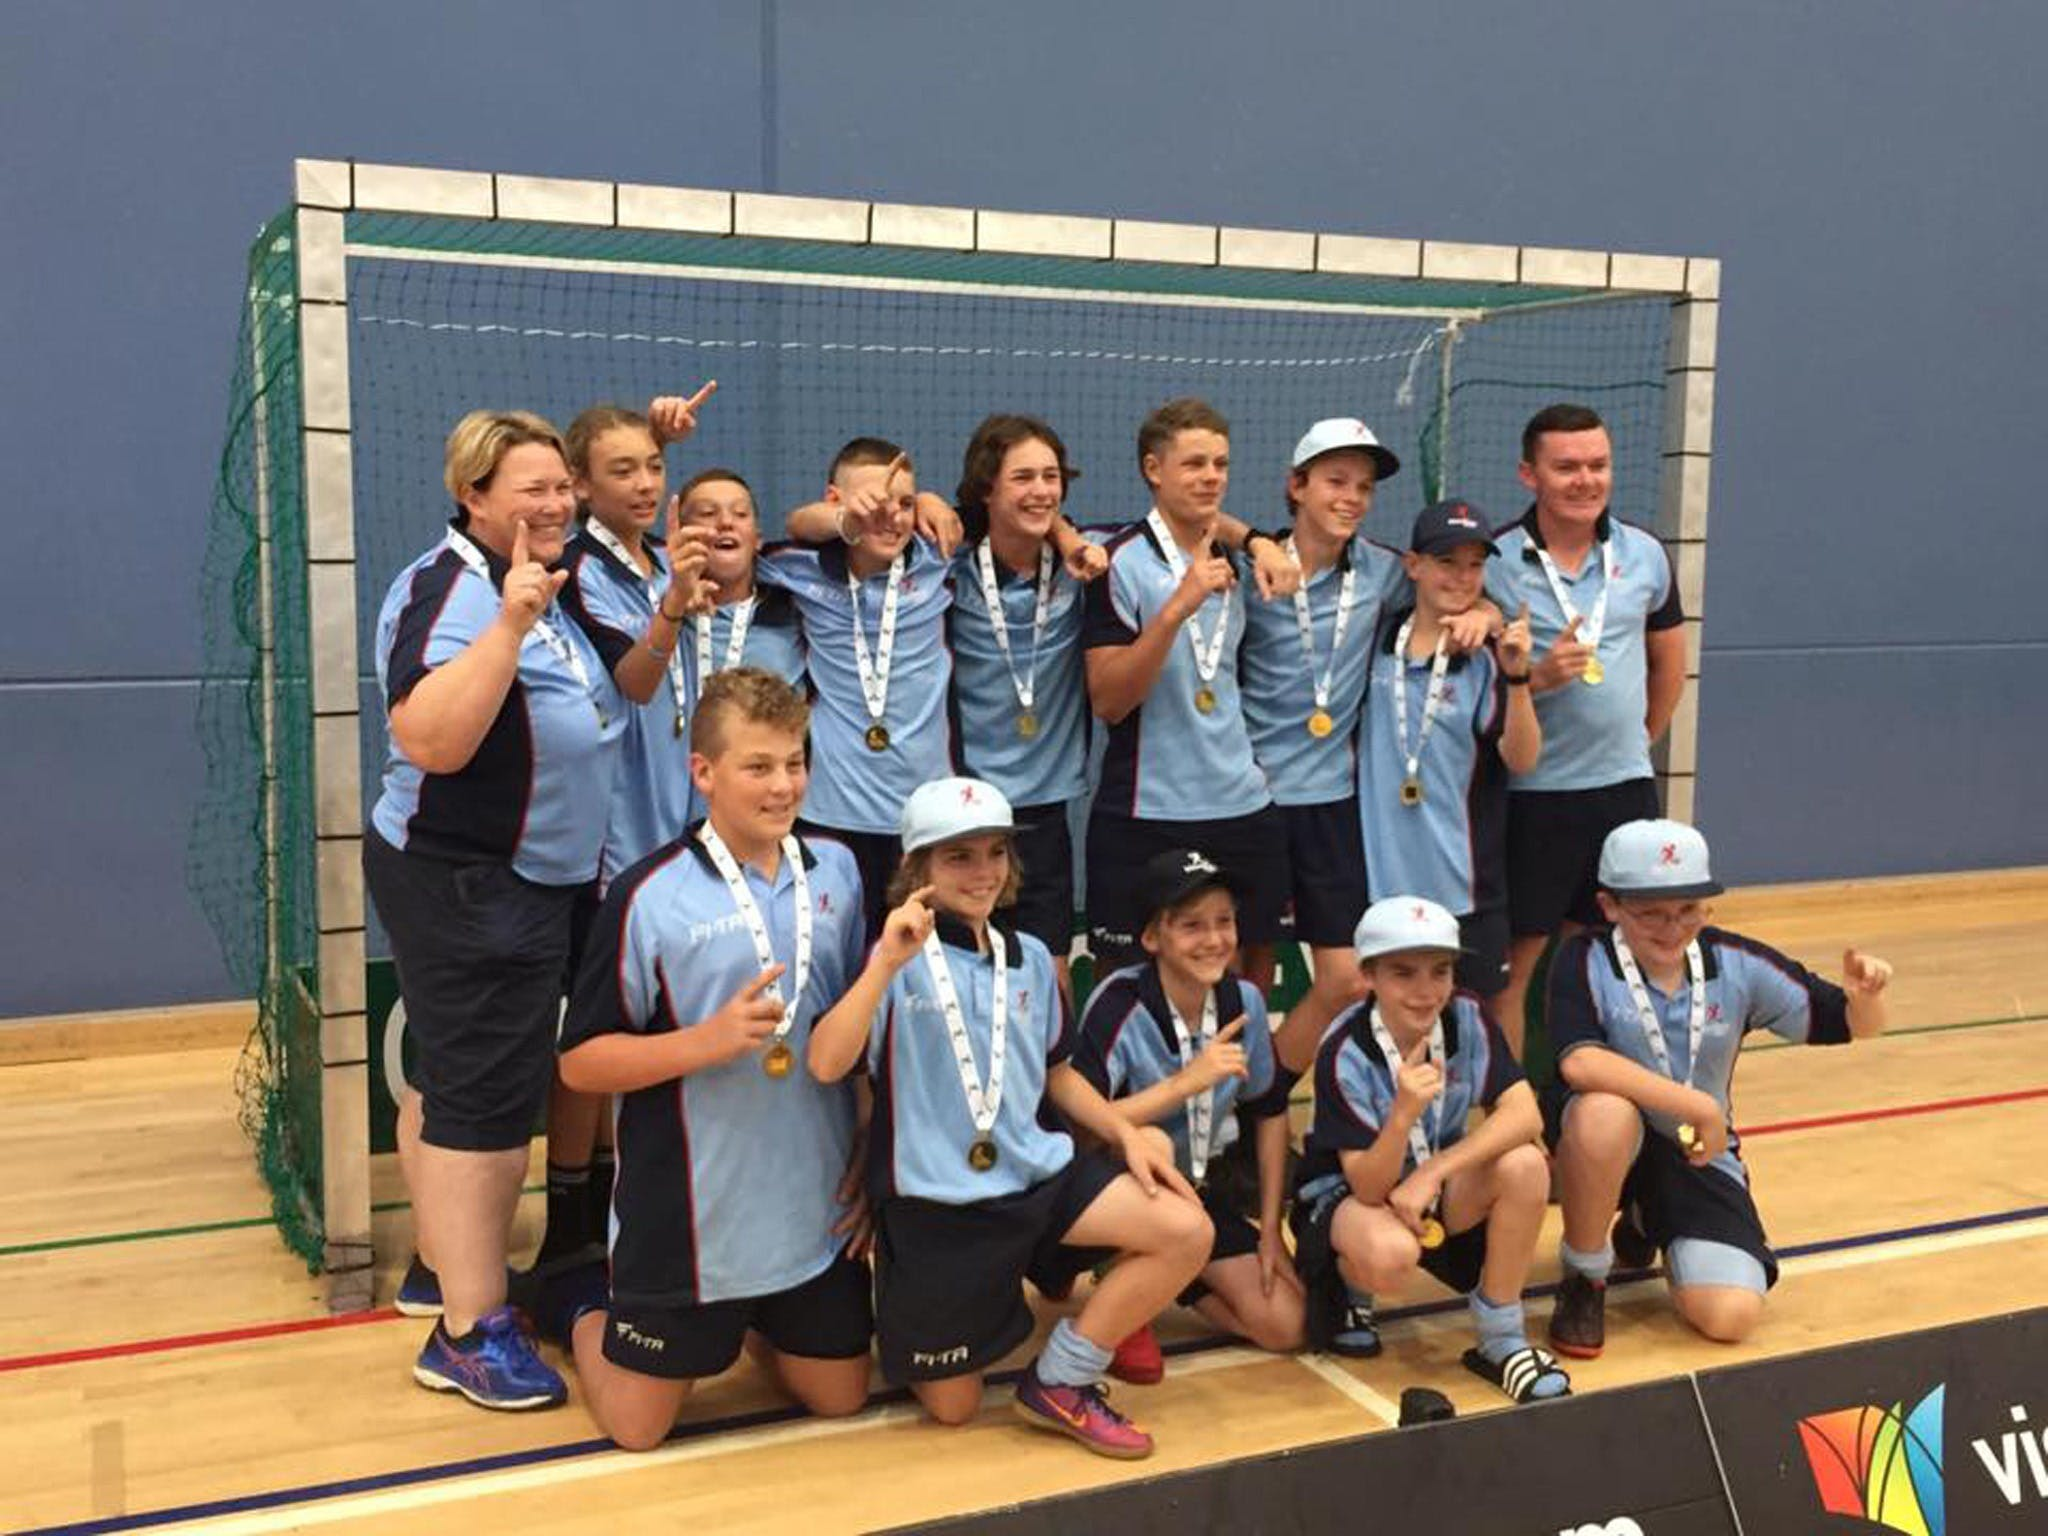 Hockey NSW Indoor State Championship  Under 18 Boys - Surfers Gold Coast